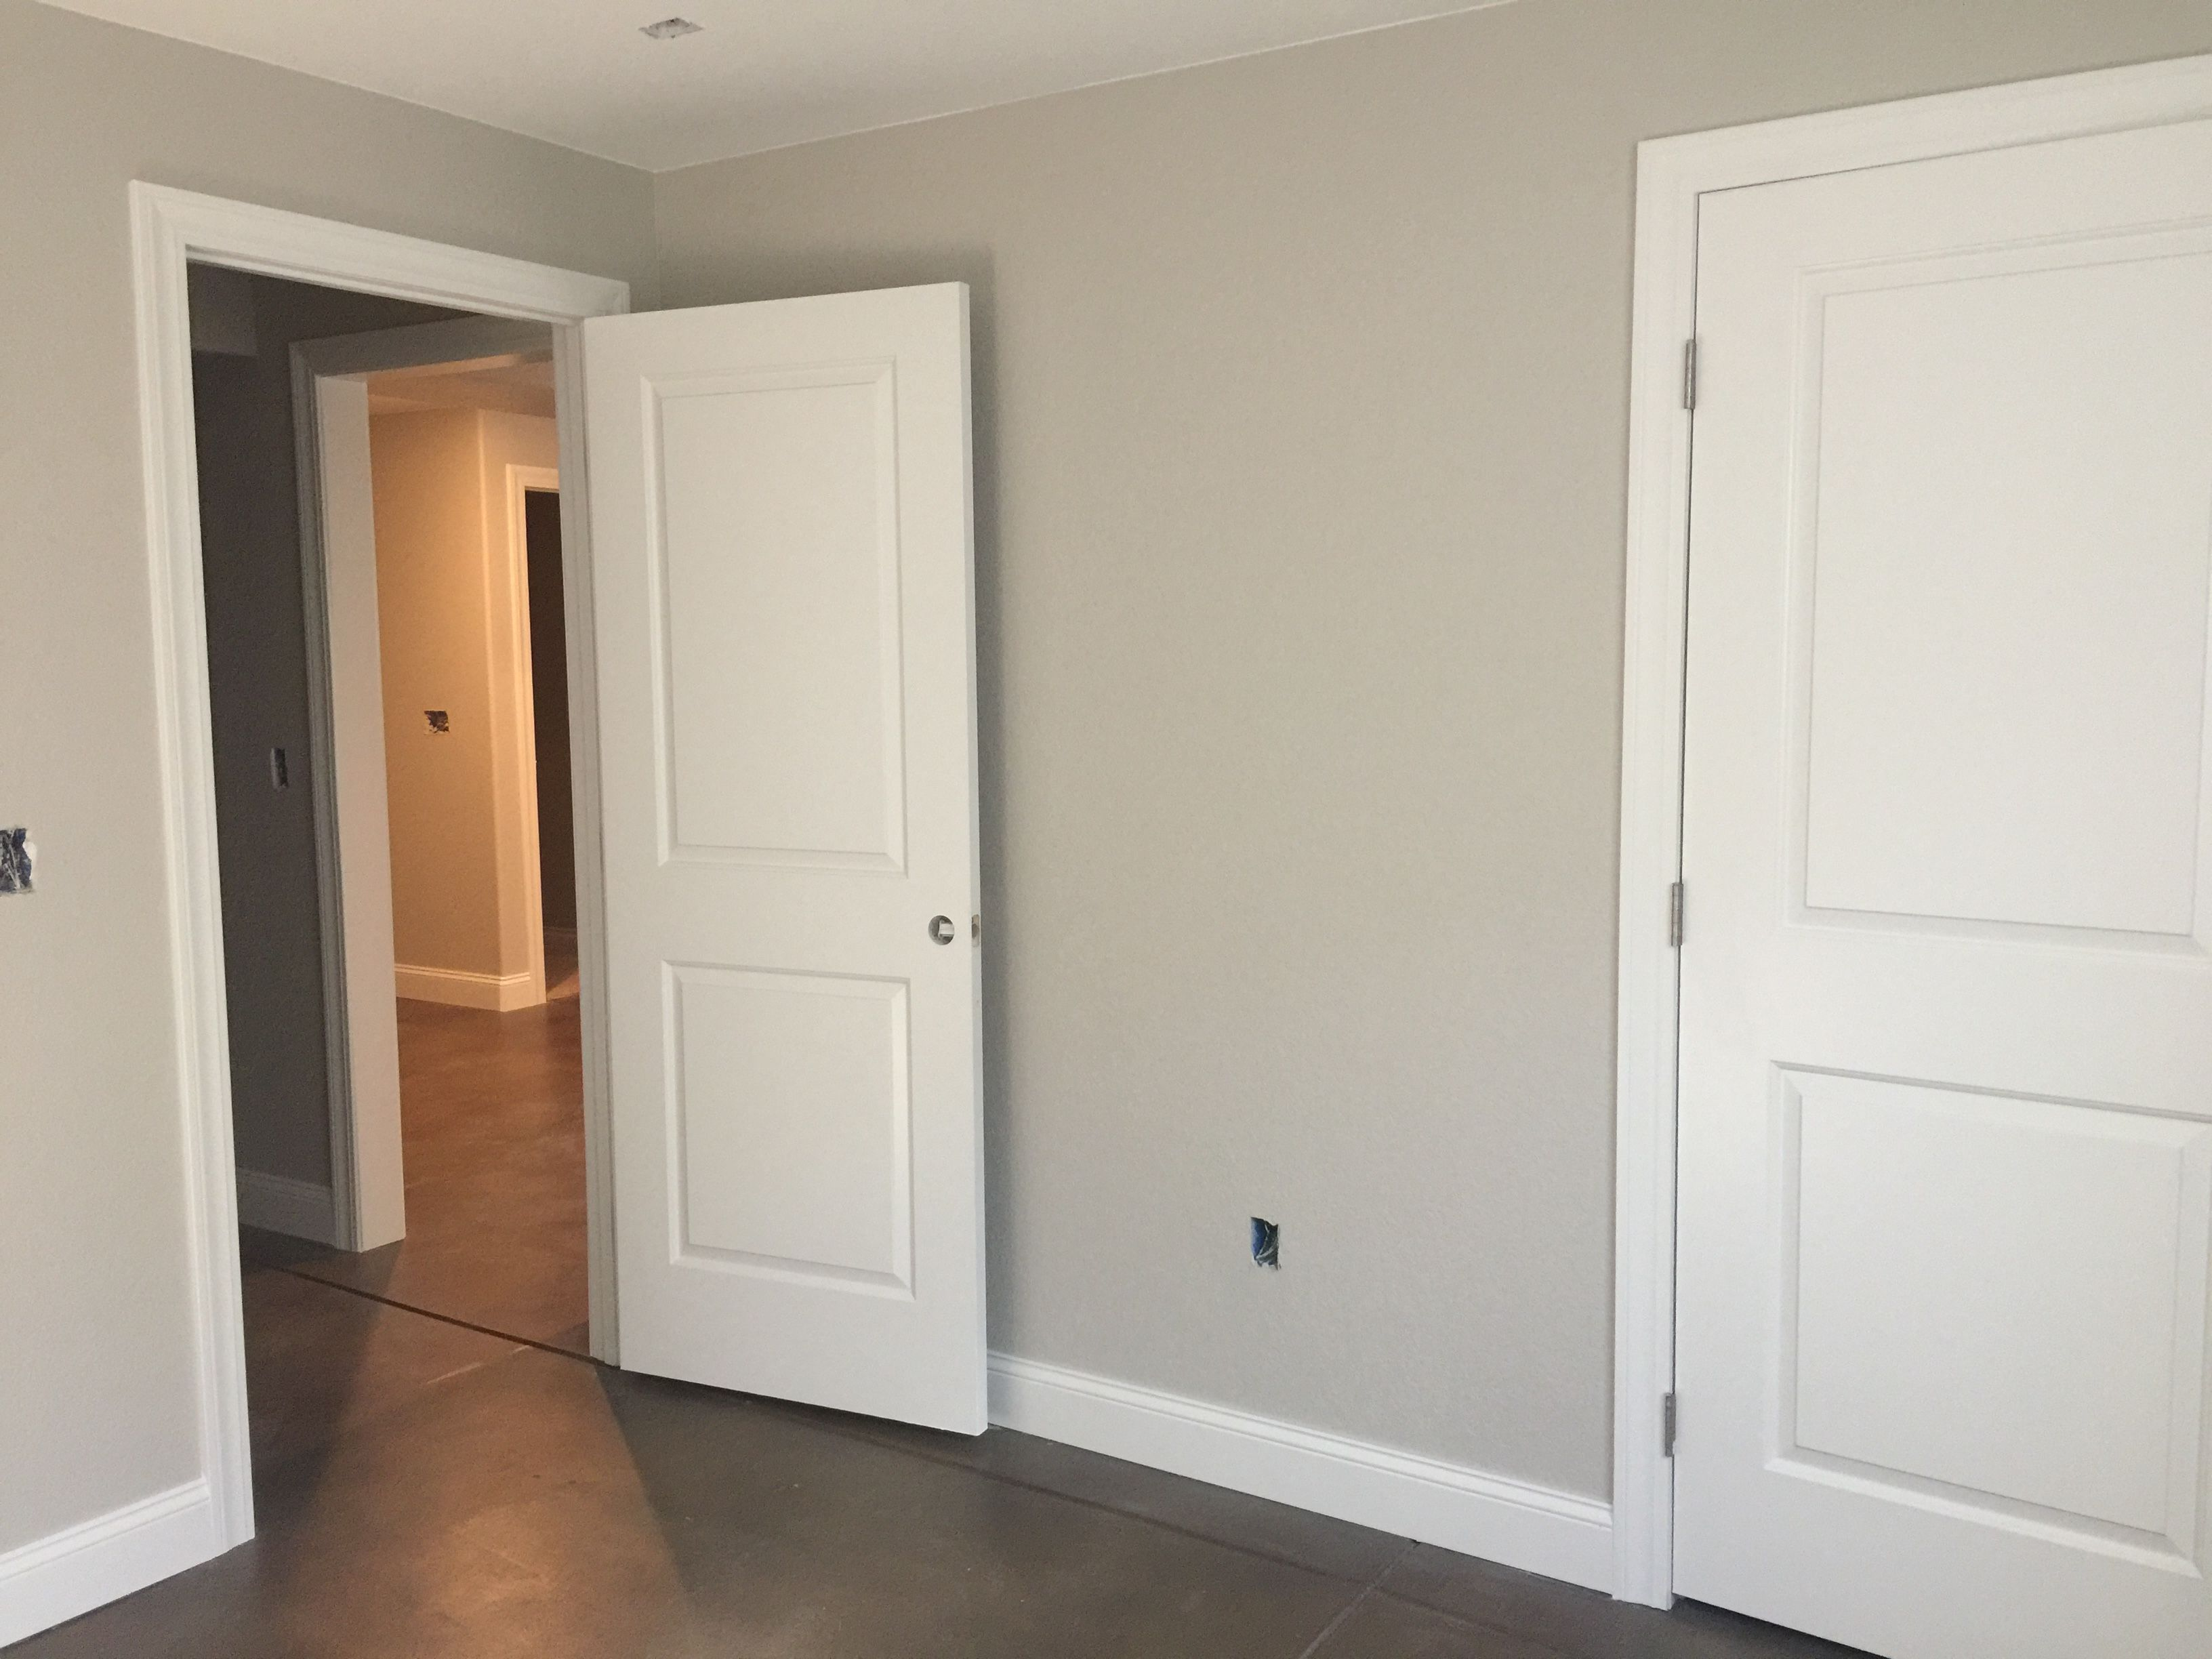 Sherwin Williams Agreeable Gray Basement Remodel Pinterest Sherwin Williams Agreeable Gray